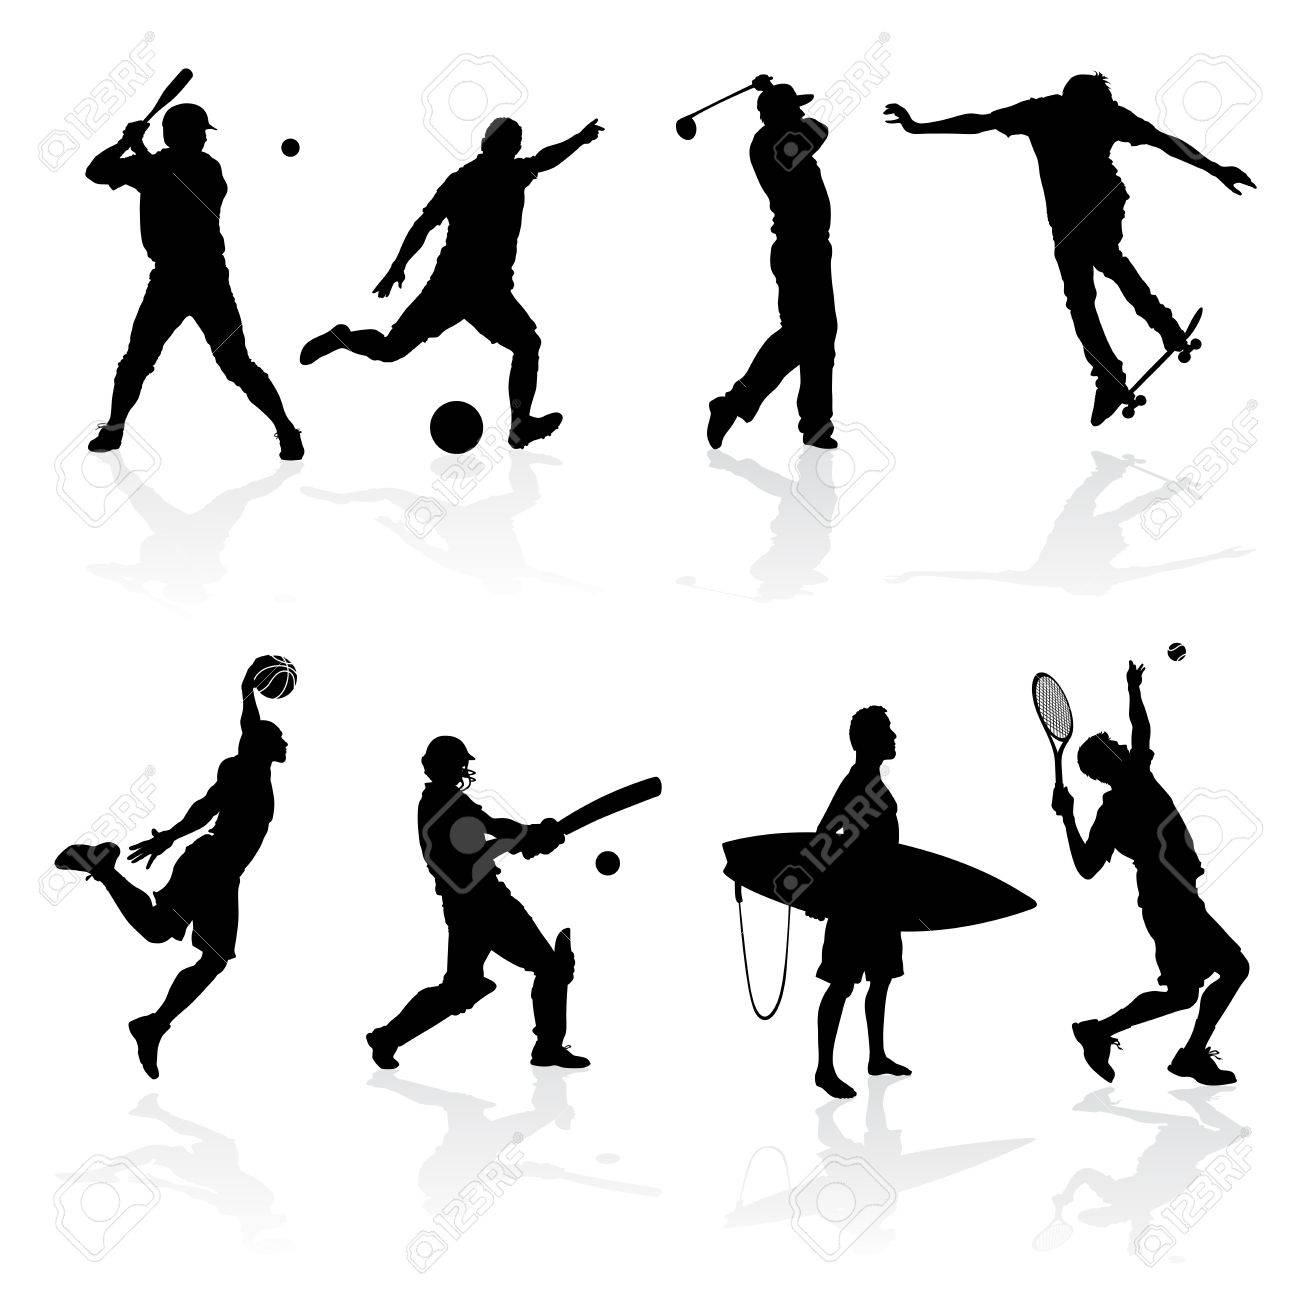 Sporting Silhouettes Stock Vector - 22142653